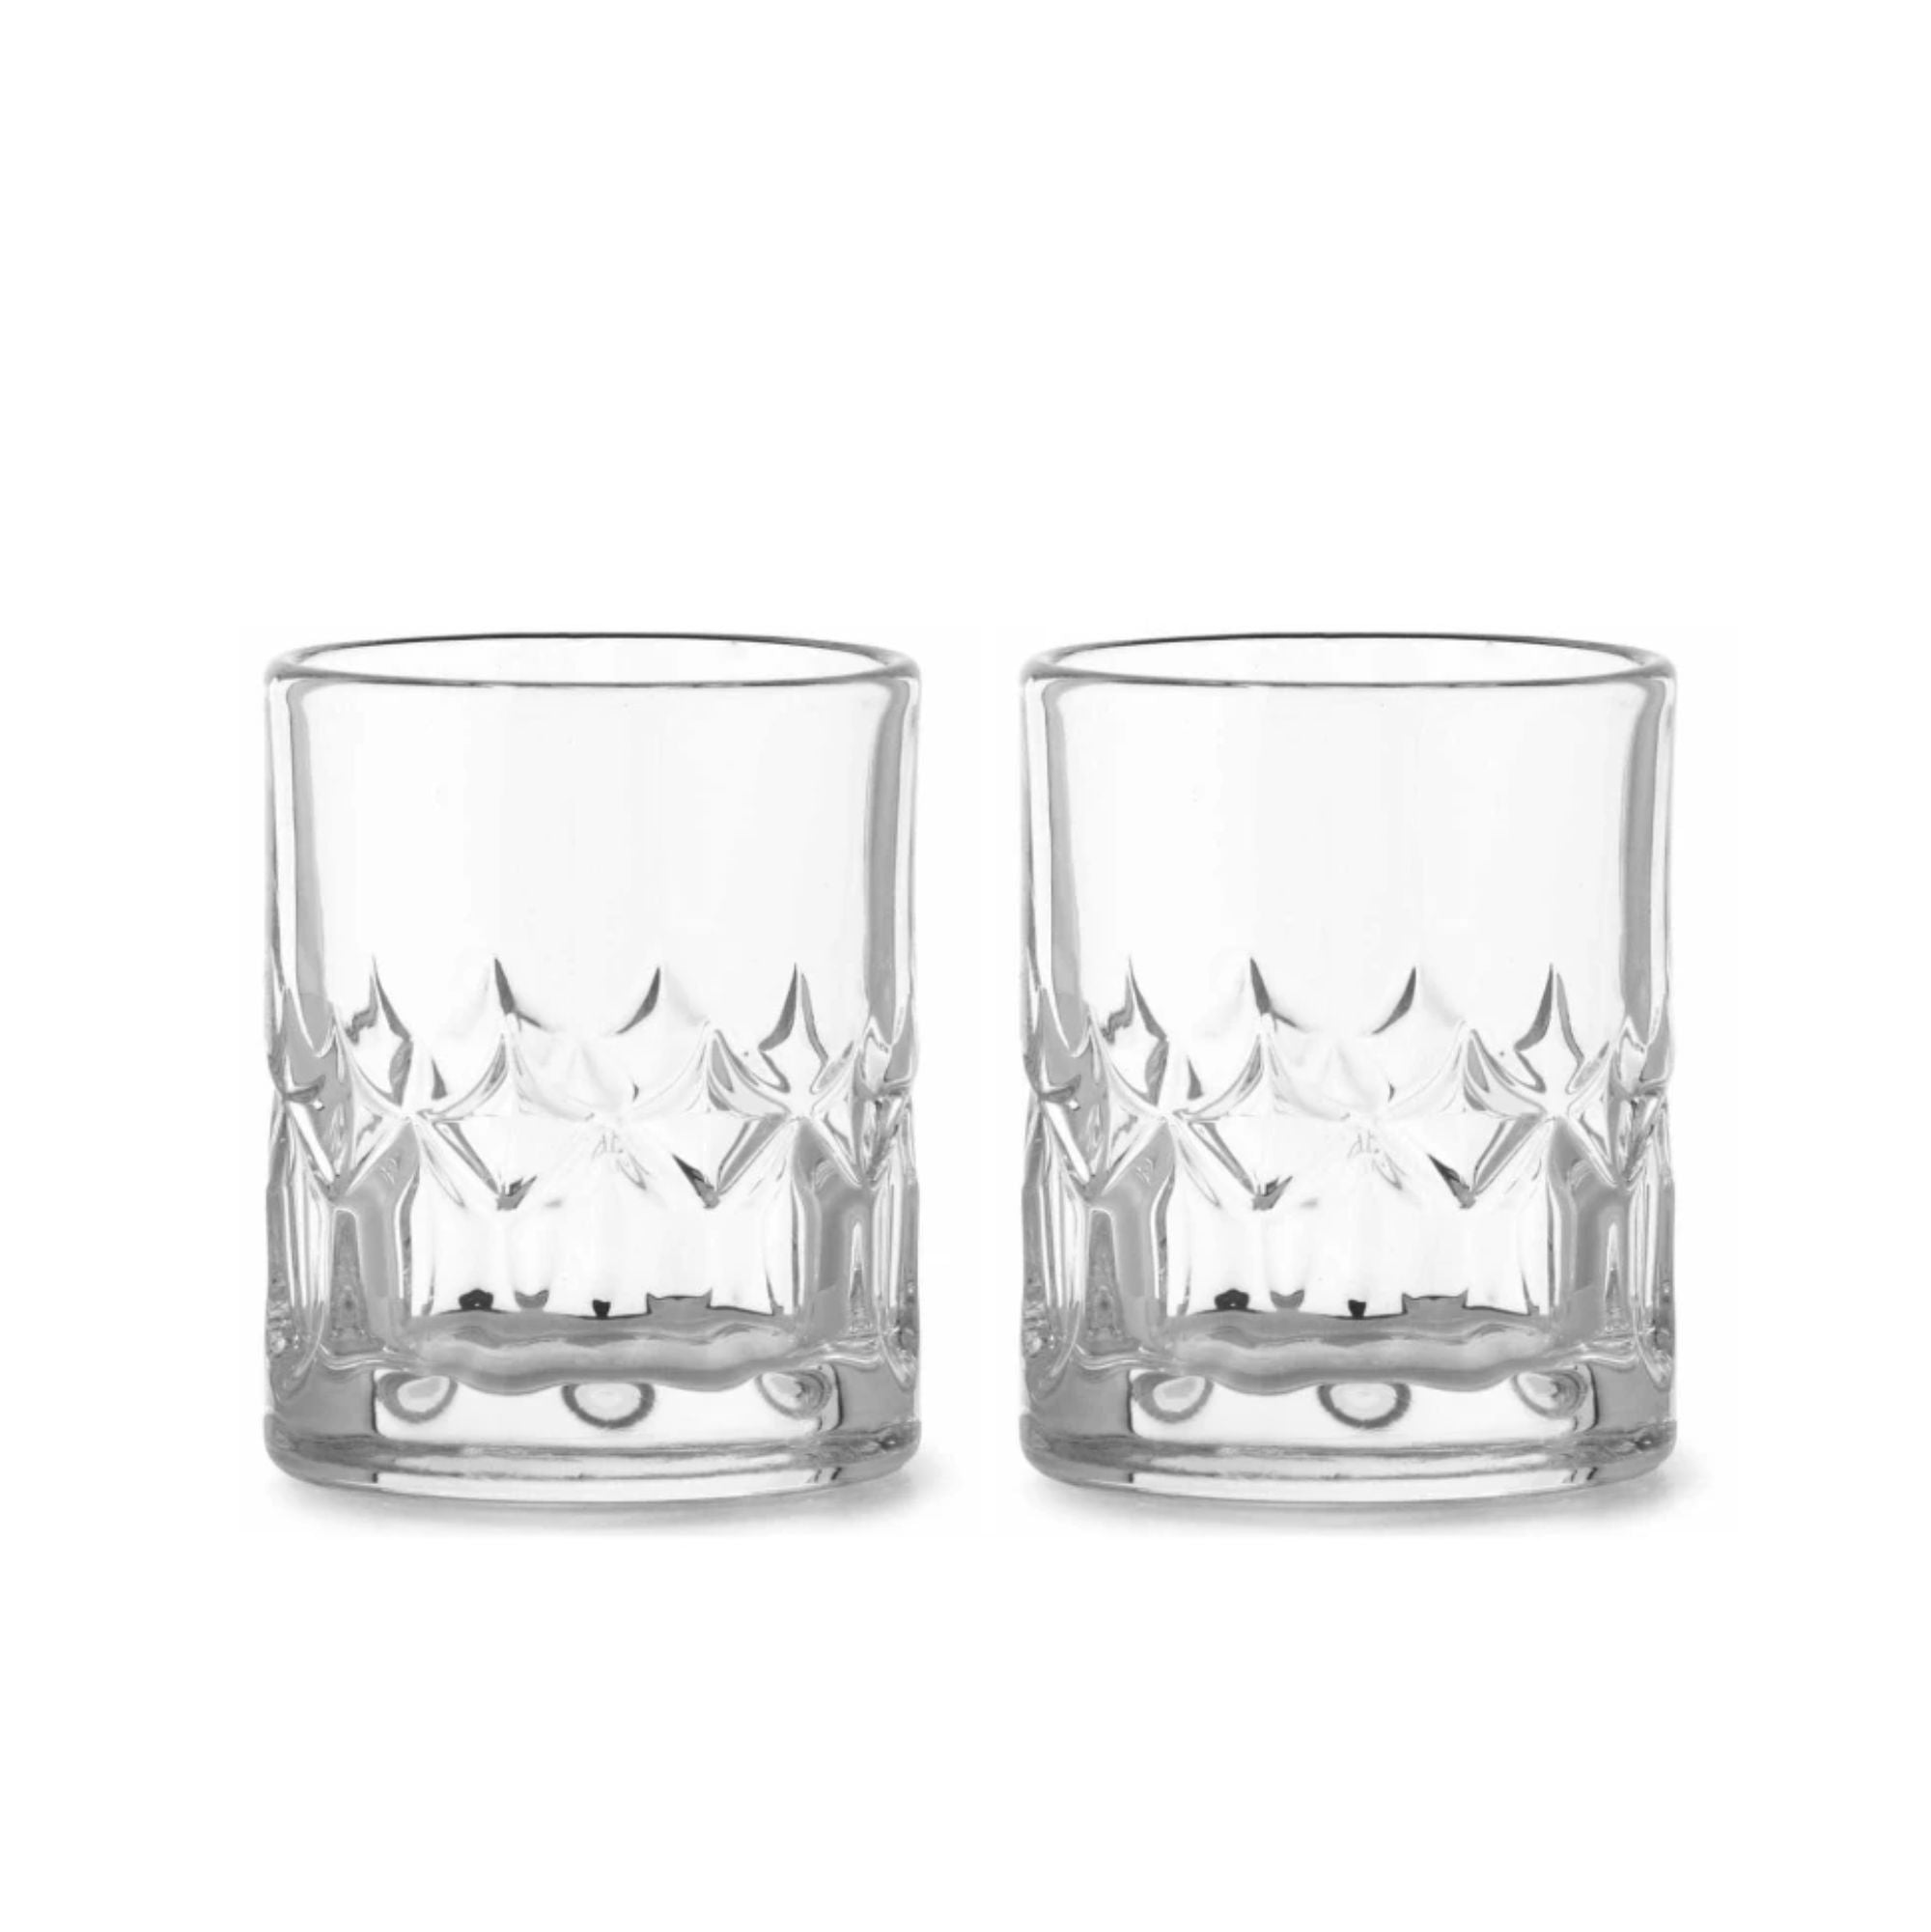 Tivoli Spirit glasses, 23 cl, set of 2